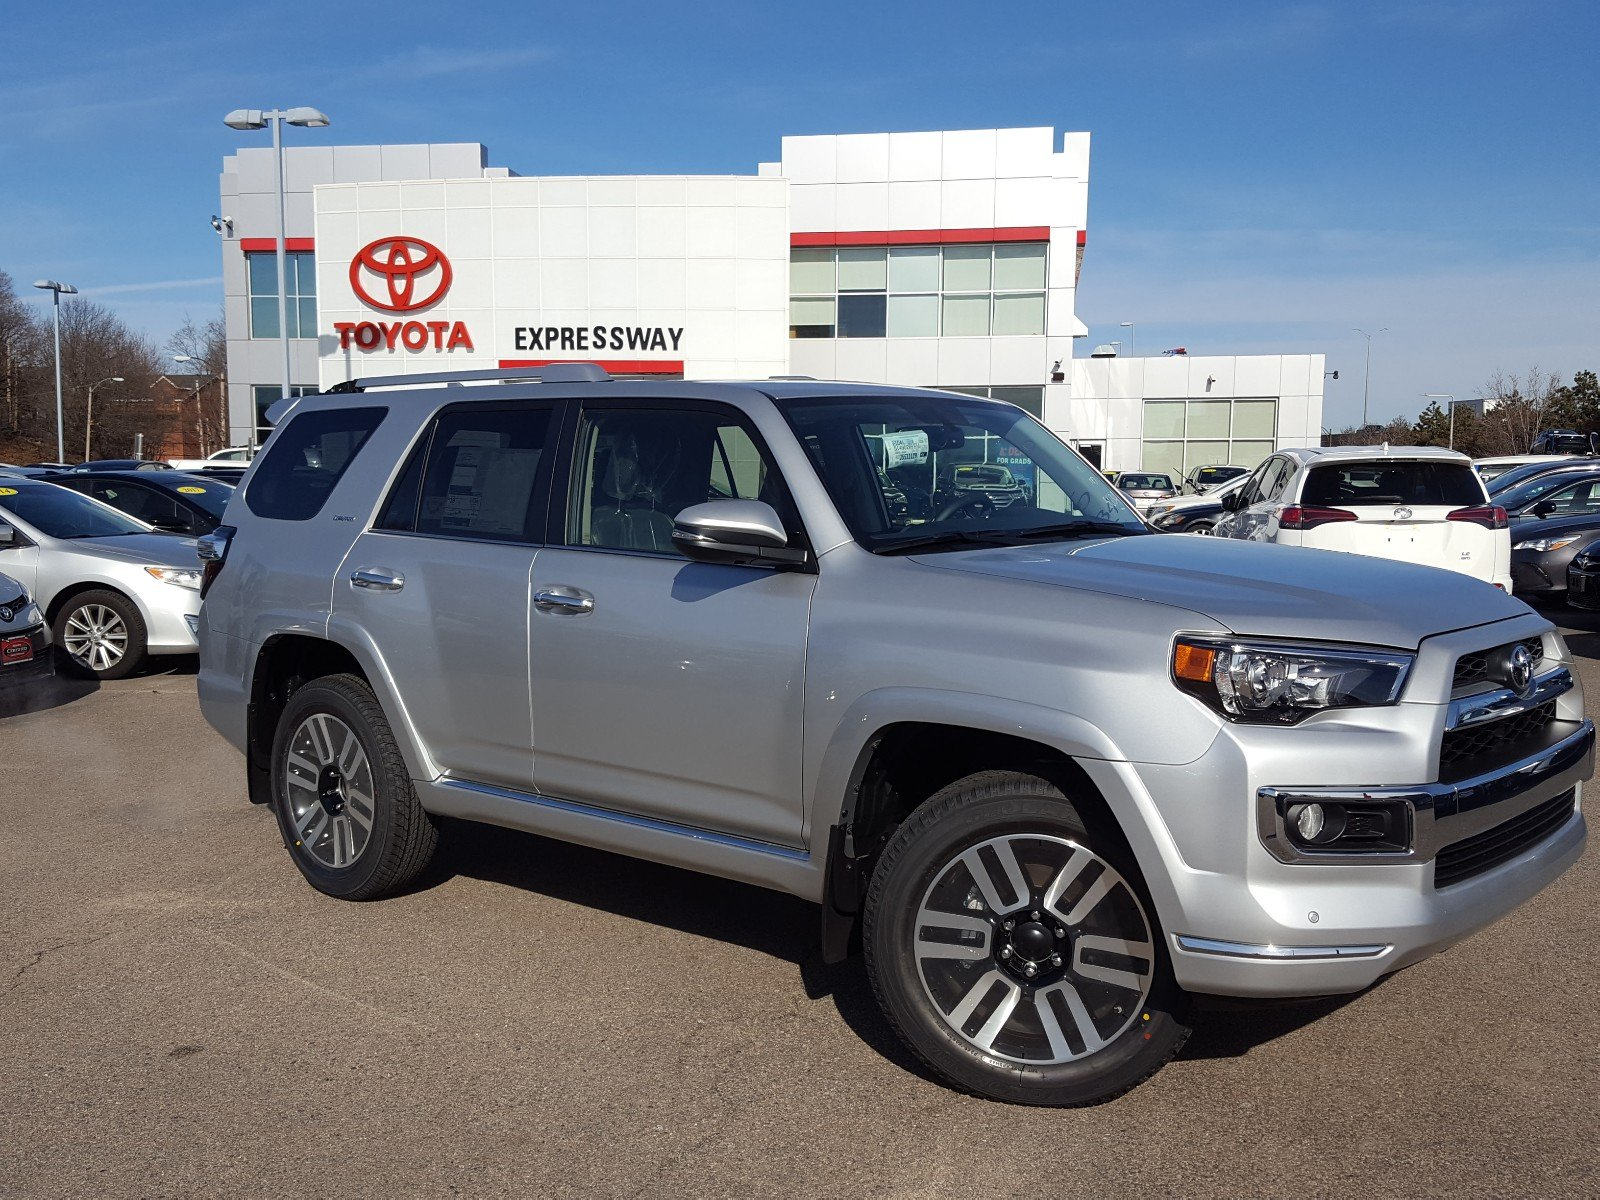 cdae33f690895ae665d2ec1895df3237 Great Description About Used toyota 4runner for Sale